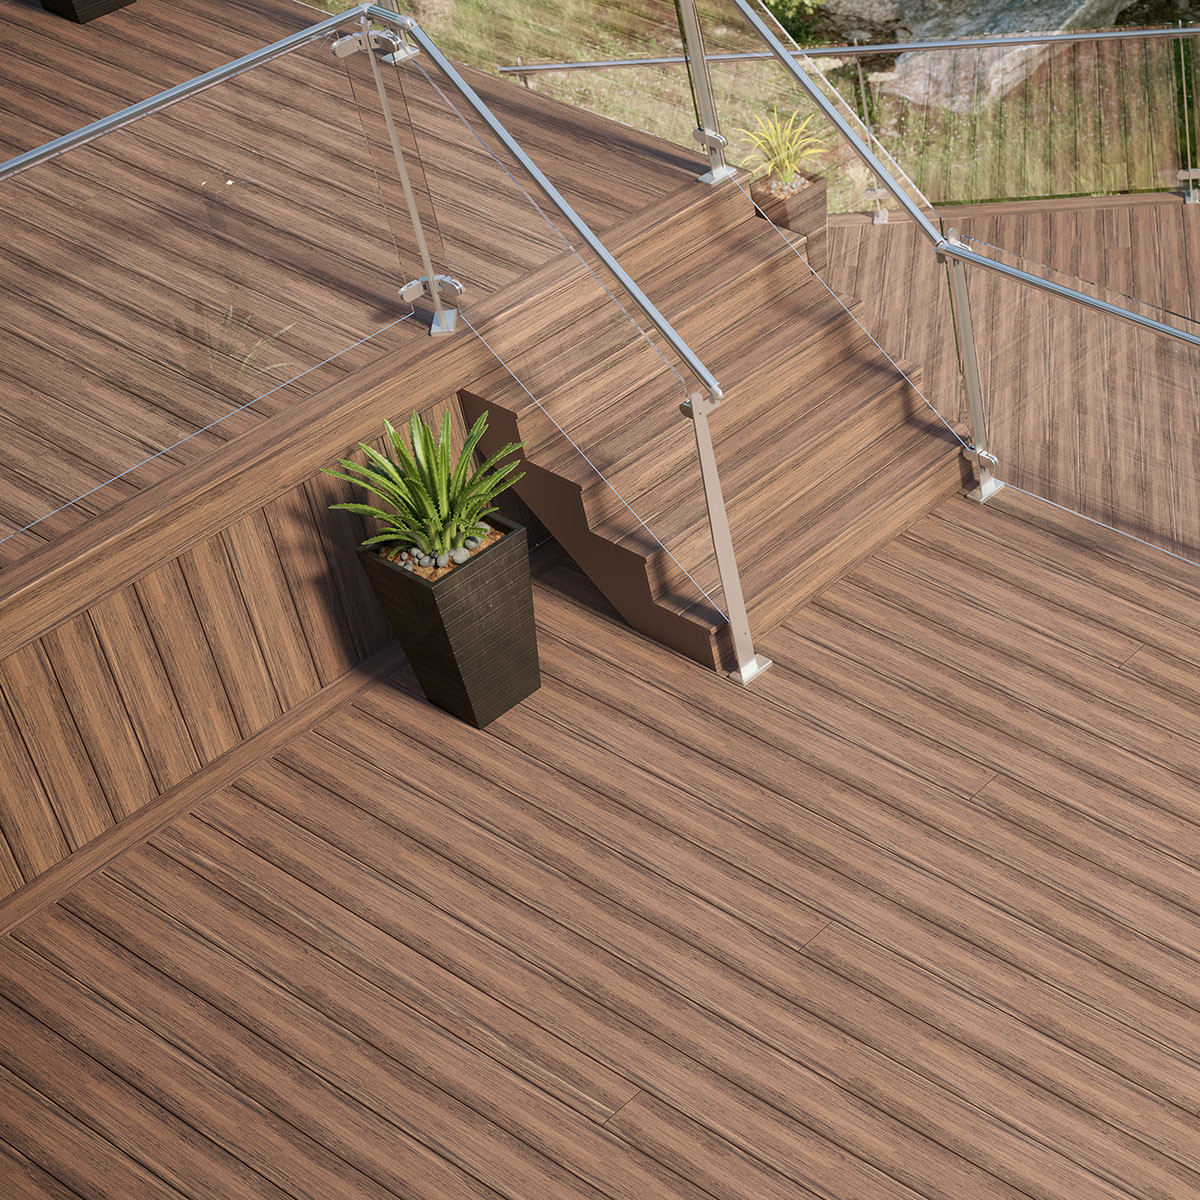 "With beautiful multi-color streaking, Deckorators Voyage Fascia Boards and <a href=""deckorators-voyage-deck-boards.html"">Voyage Decking</a> create a look all in one."